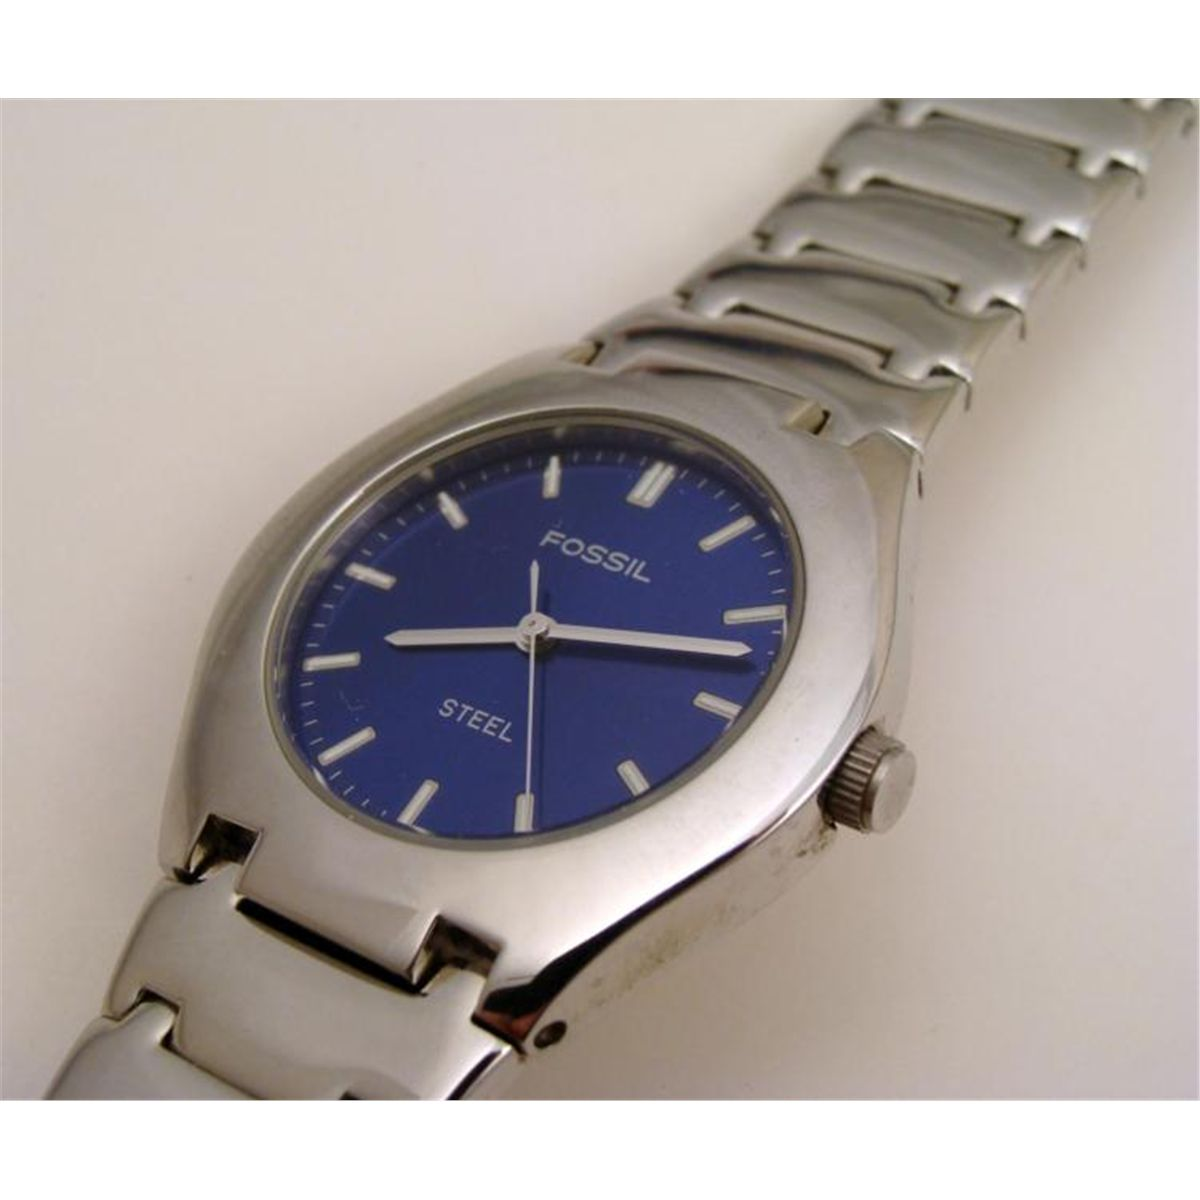 Best Fossil Blue Watch Stainless Steel Image Collection Breaker Fs 5049 With Leather Band